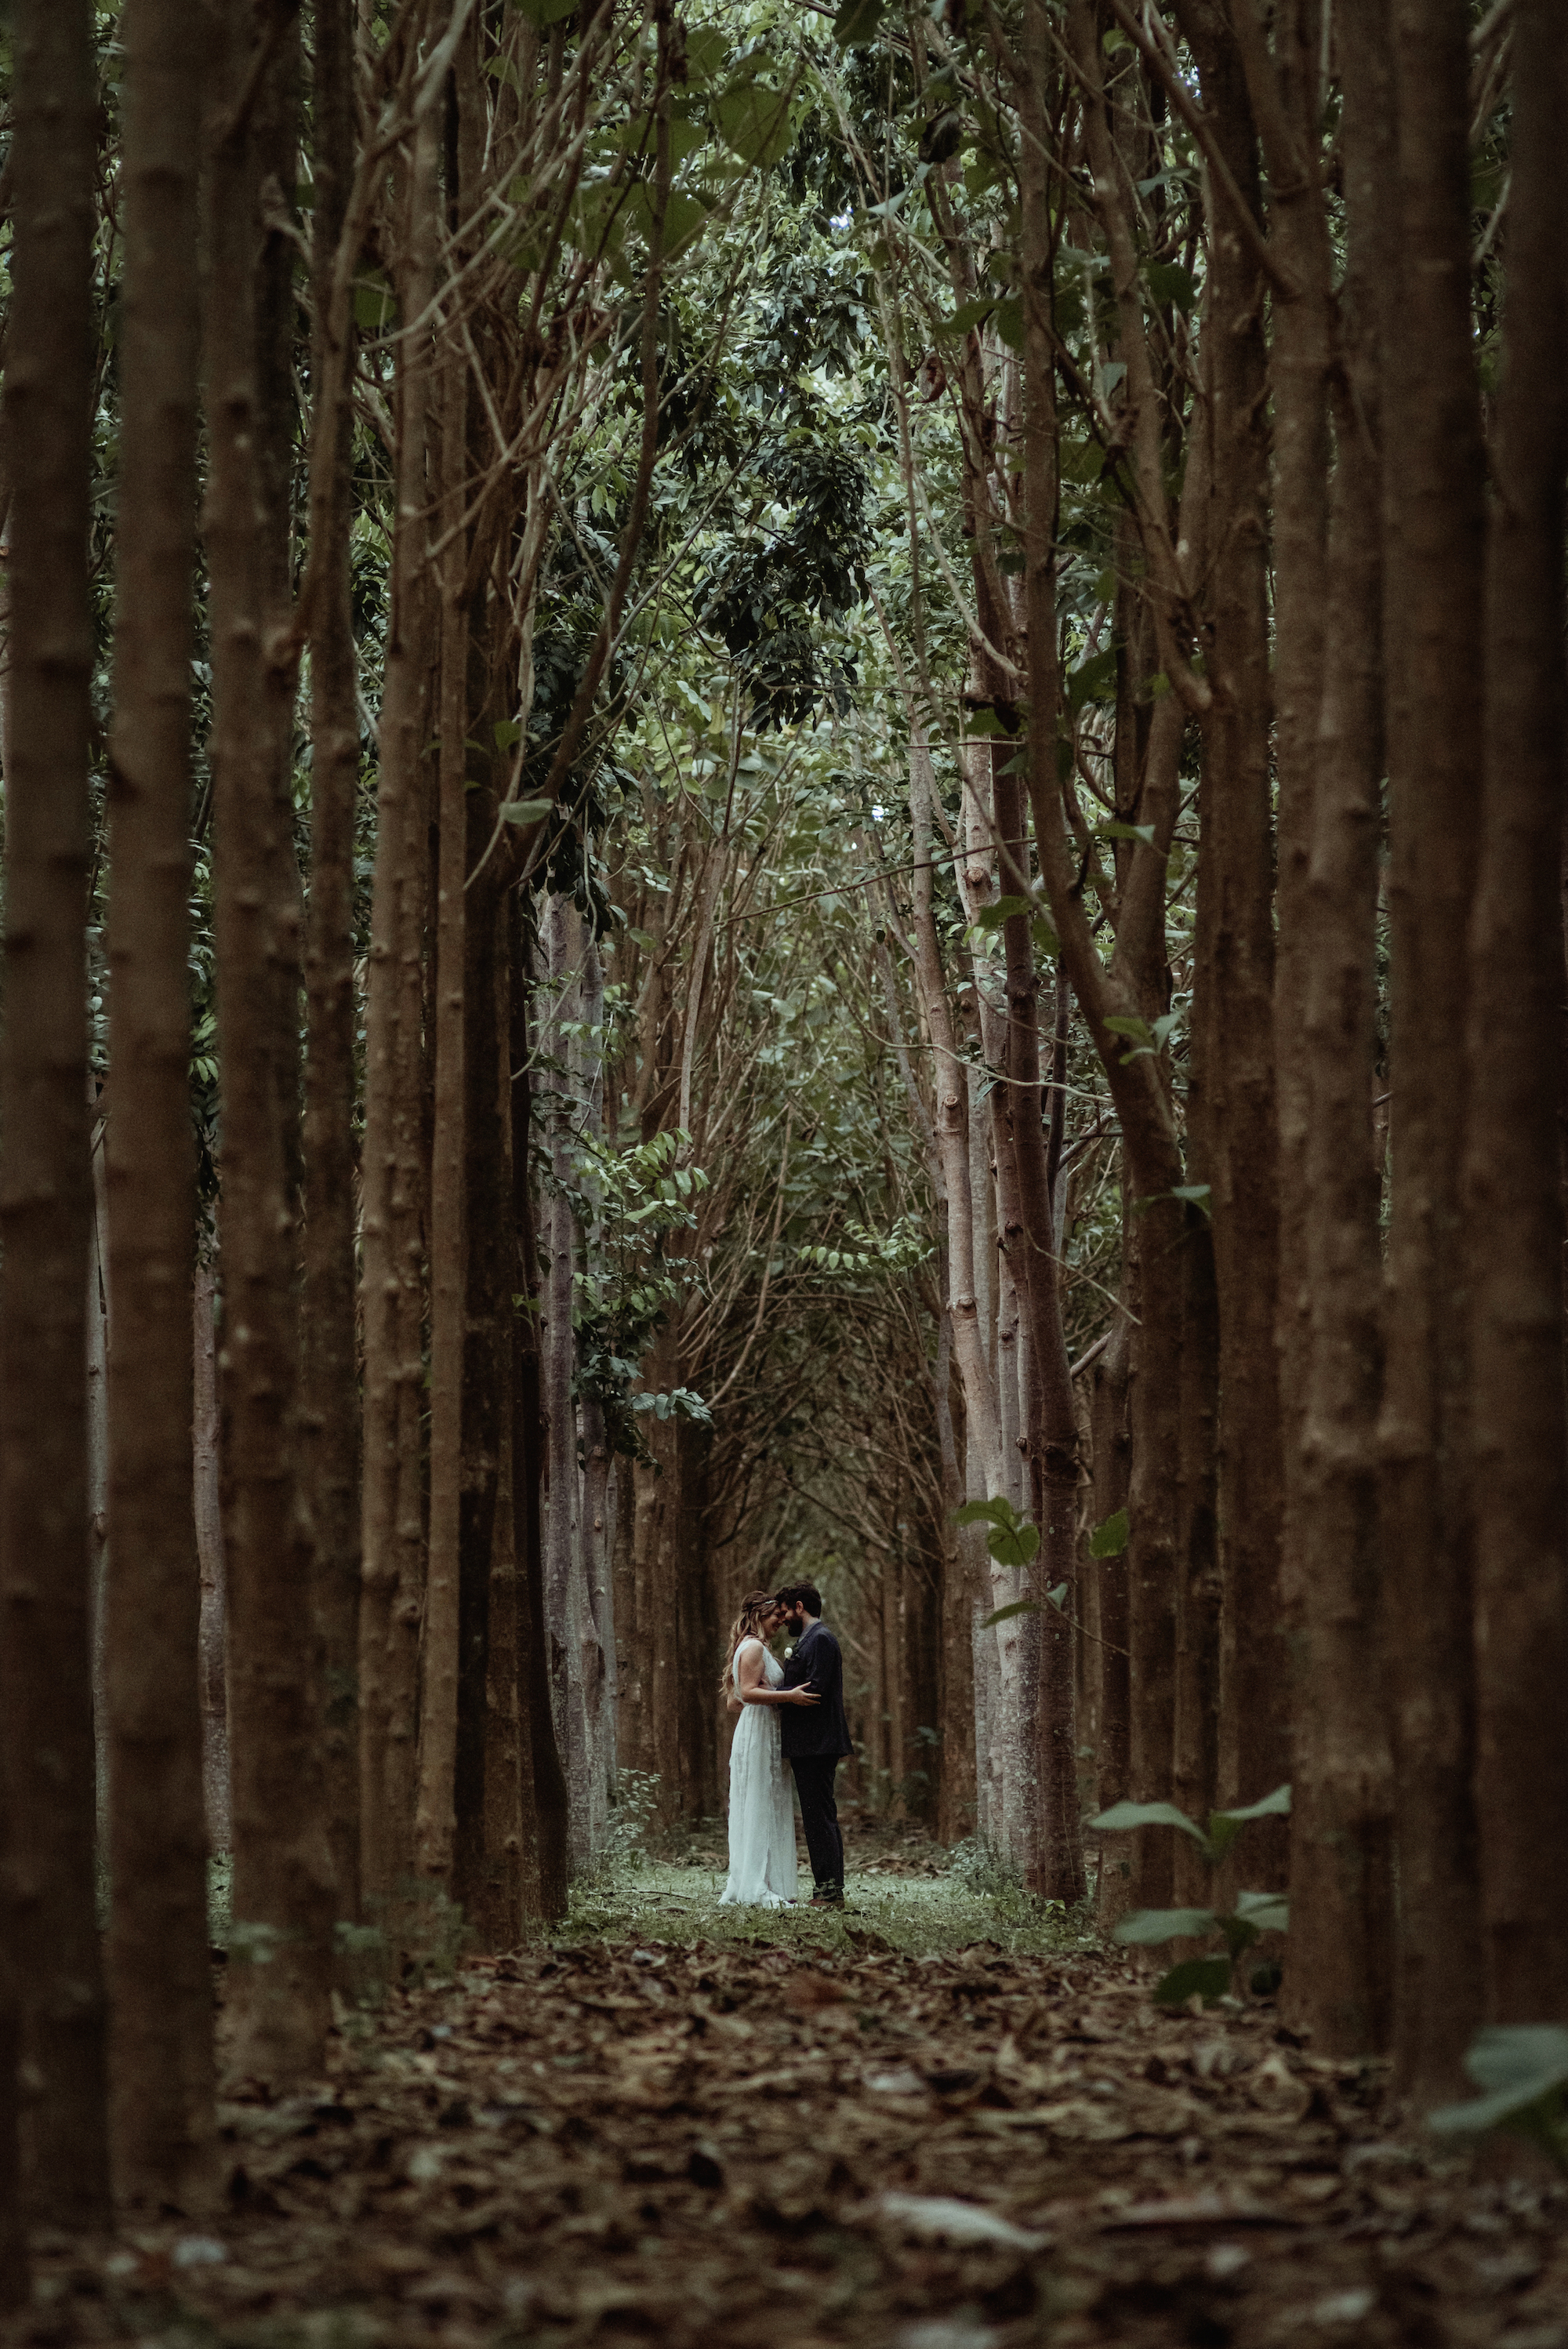 Elopement at One of Our Signature Locations on Kauai